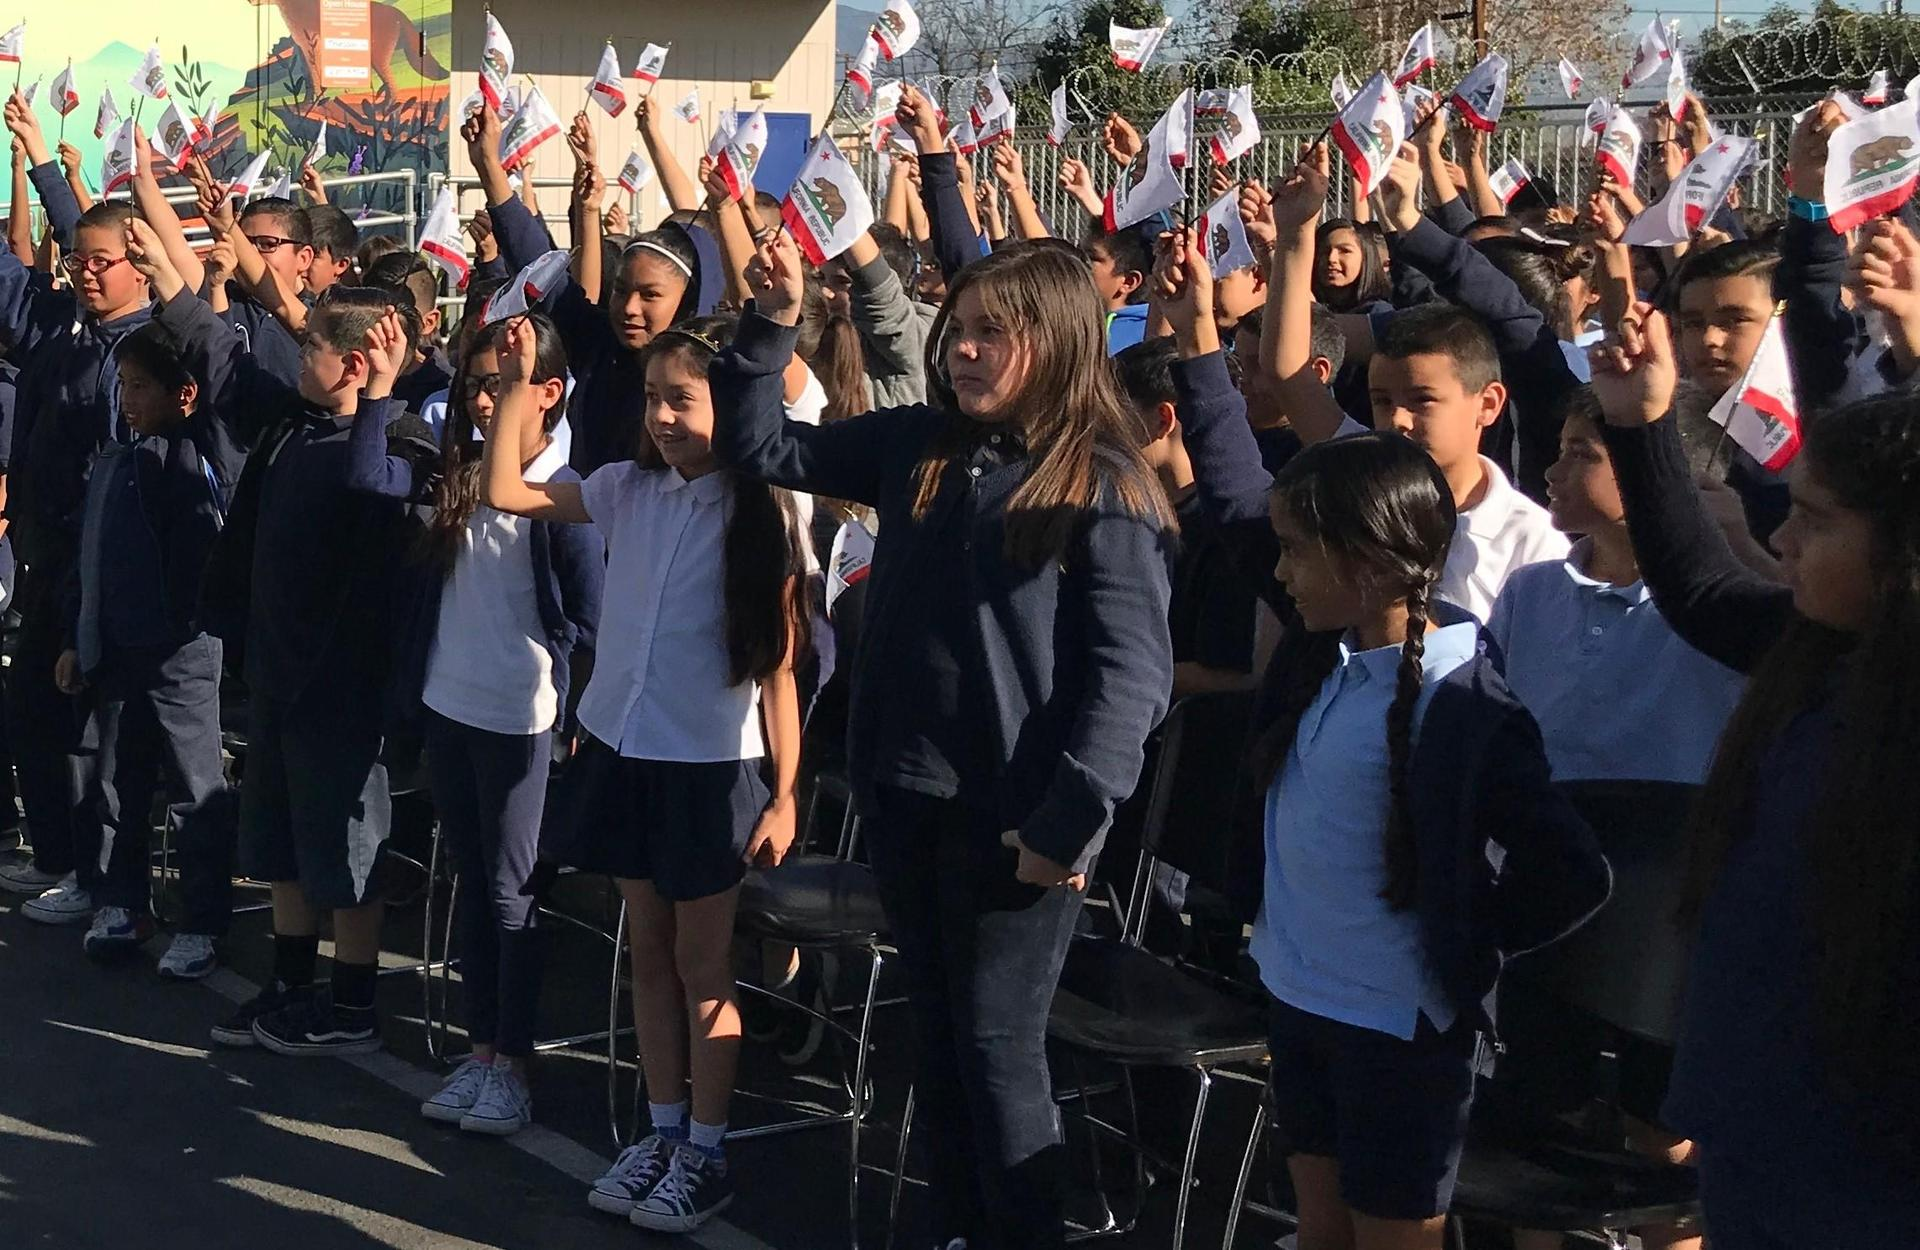 4th graders celebrate California flag